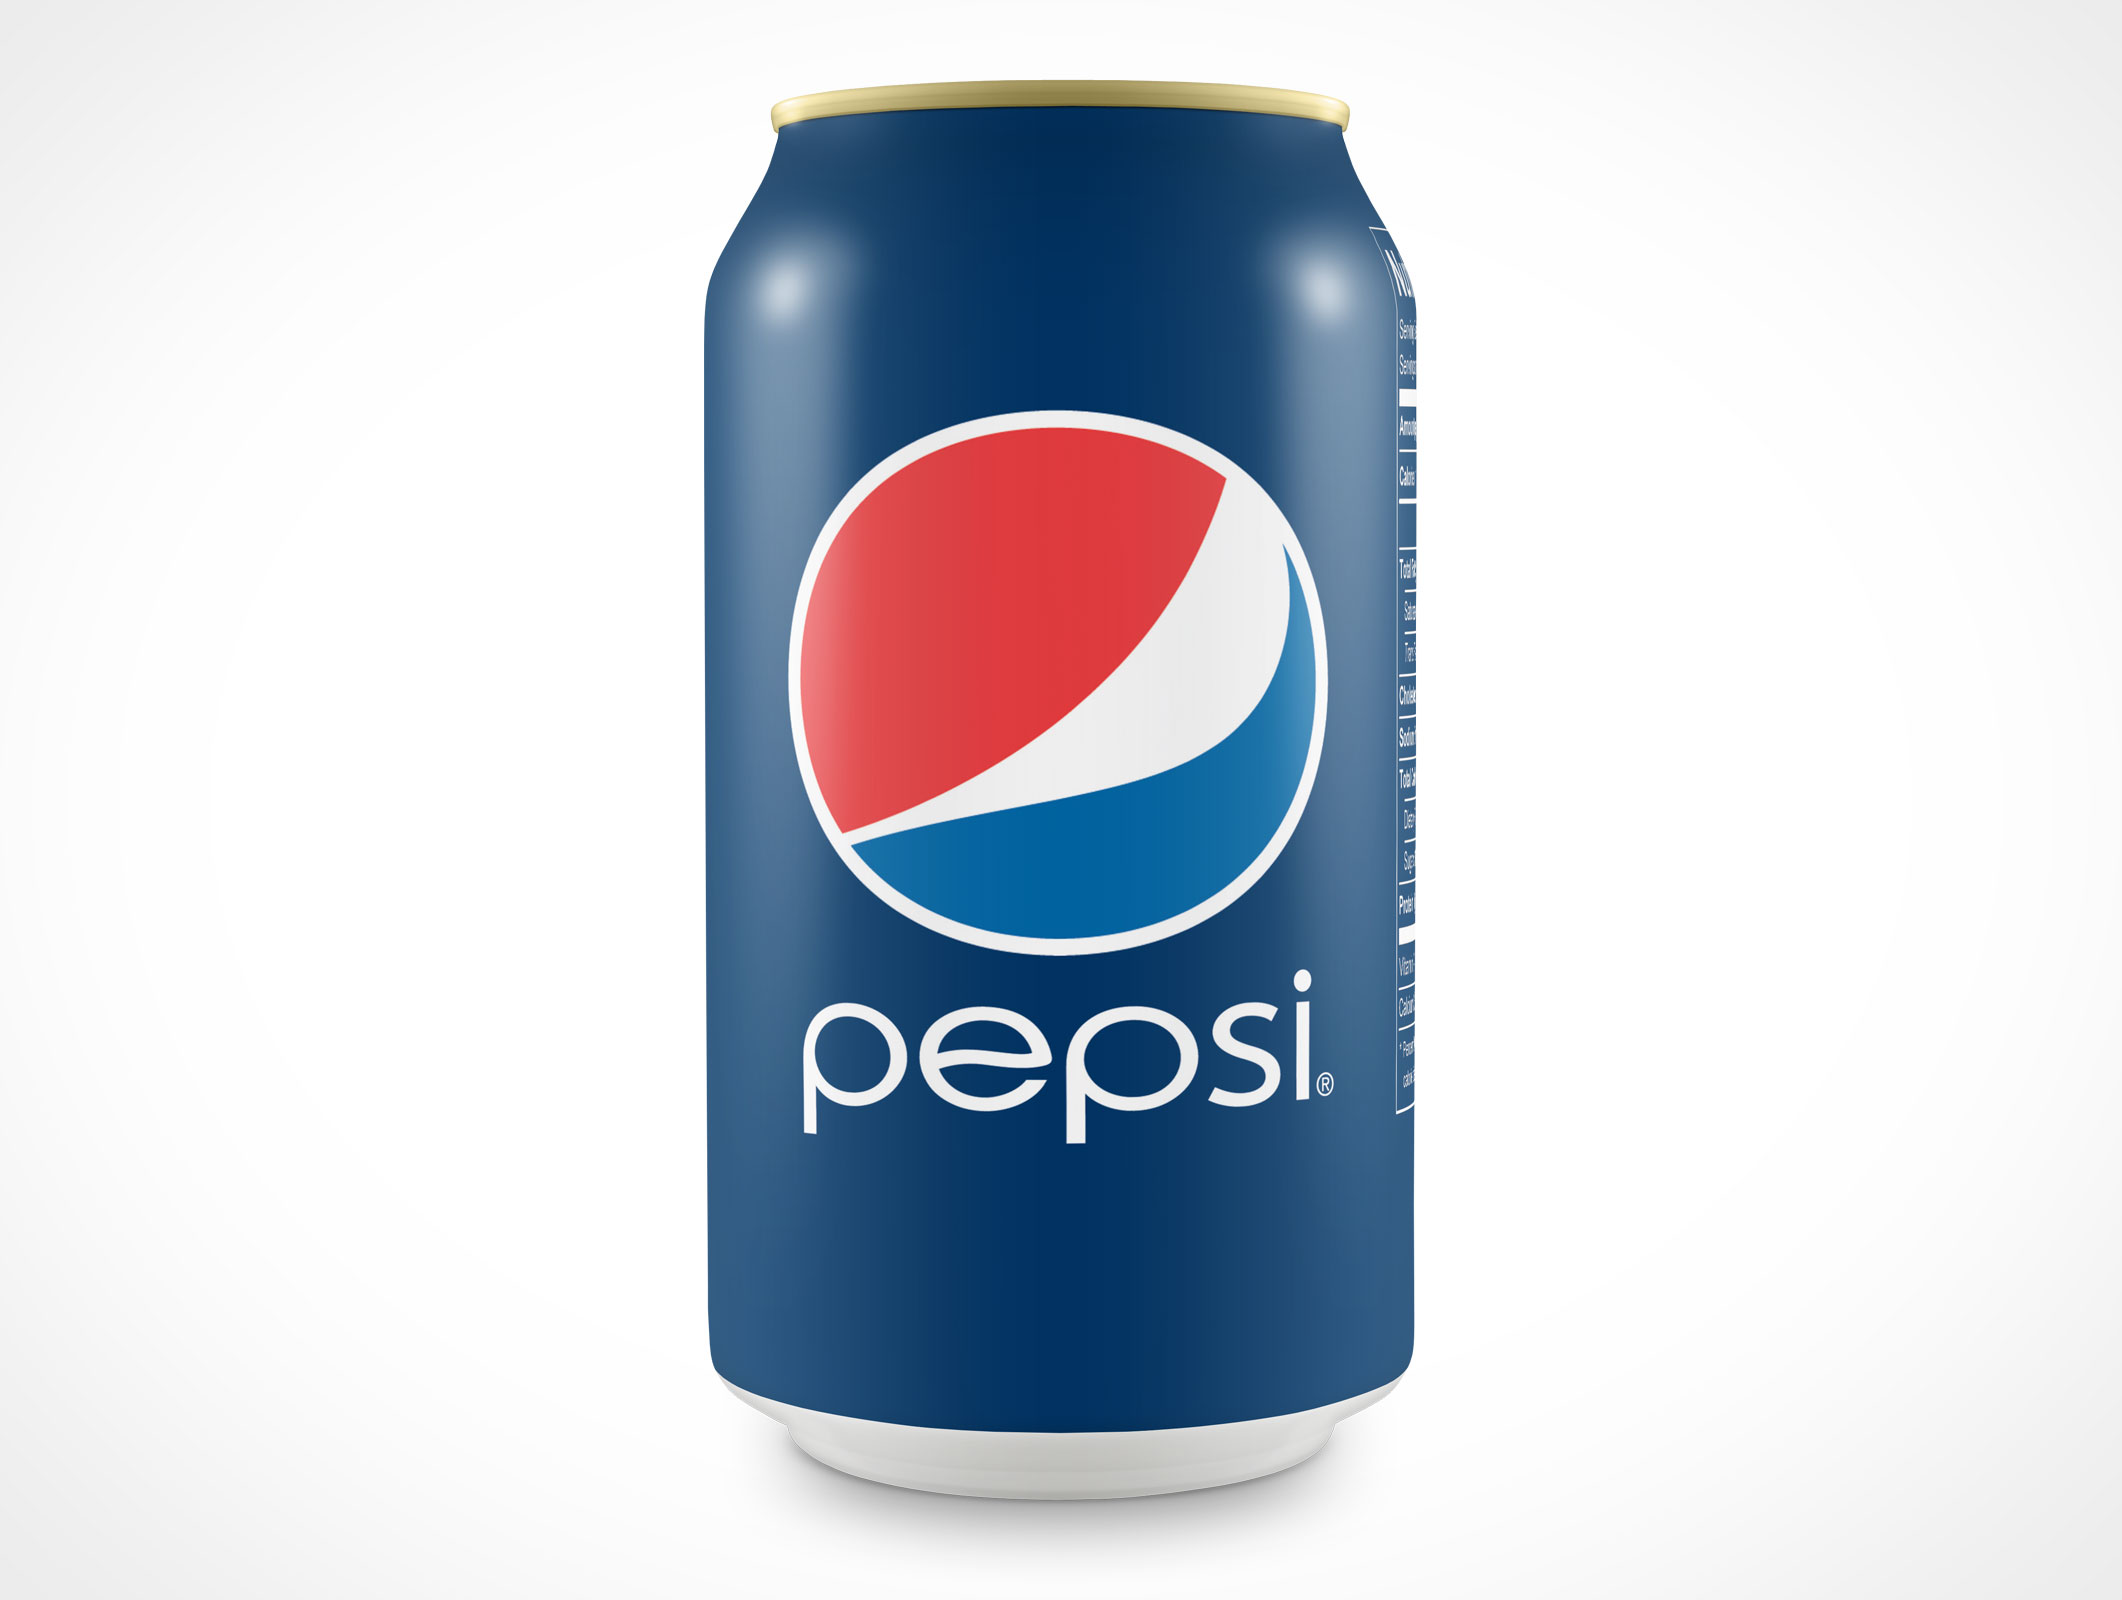 Pepsi clipart cold drink #1